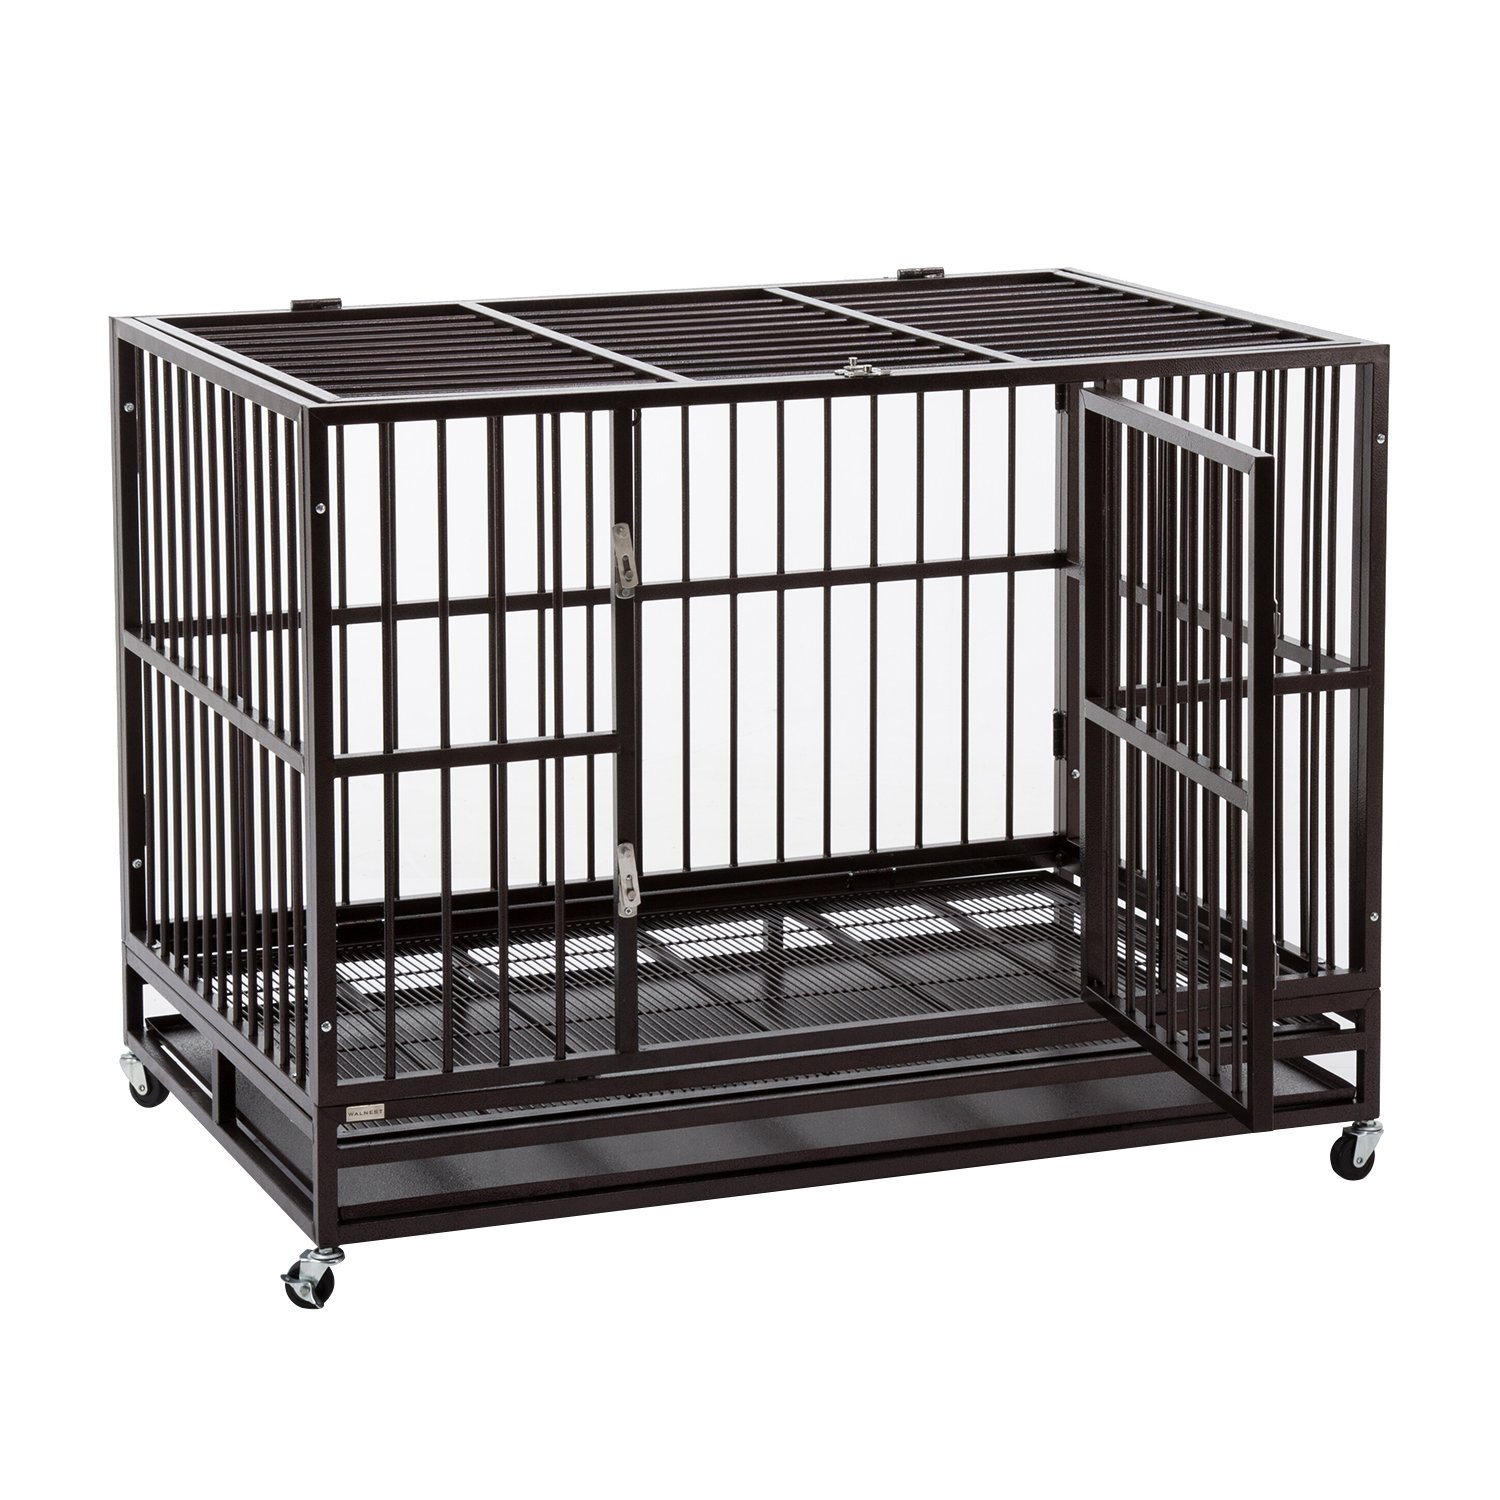 Sliverylake 3XL 48 Dog Cage, Dog Crates for Large Dogs Dog Kennel – Heavy Duty Double Door Pet Cage w Metal Tray Wheels Exercise Playpen 48 , Golden